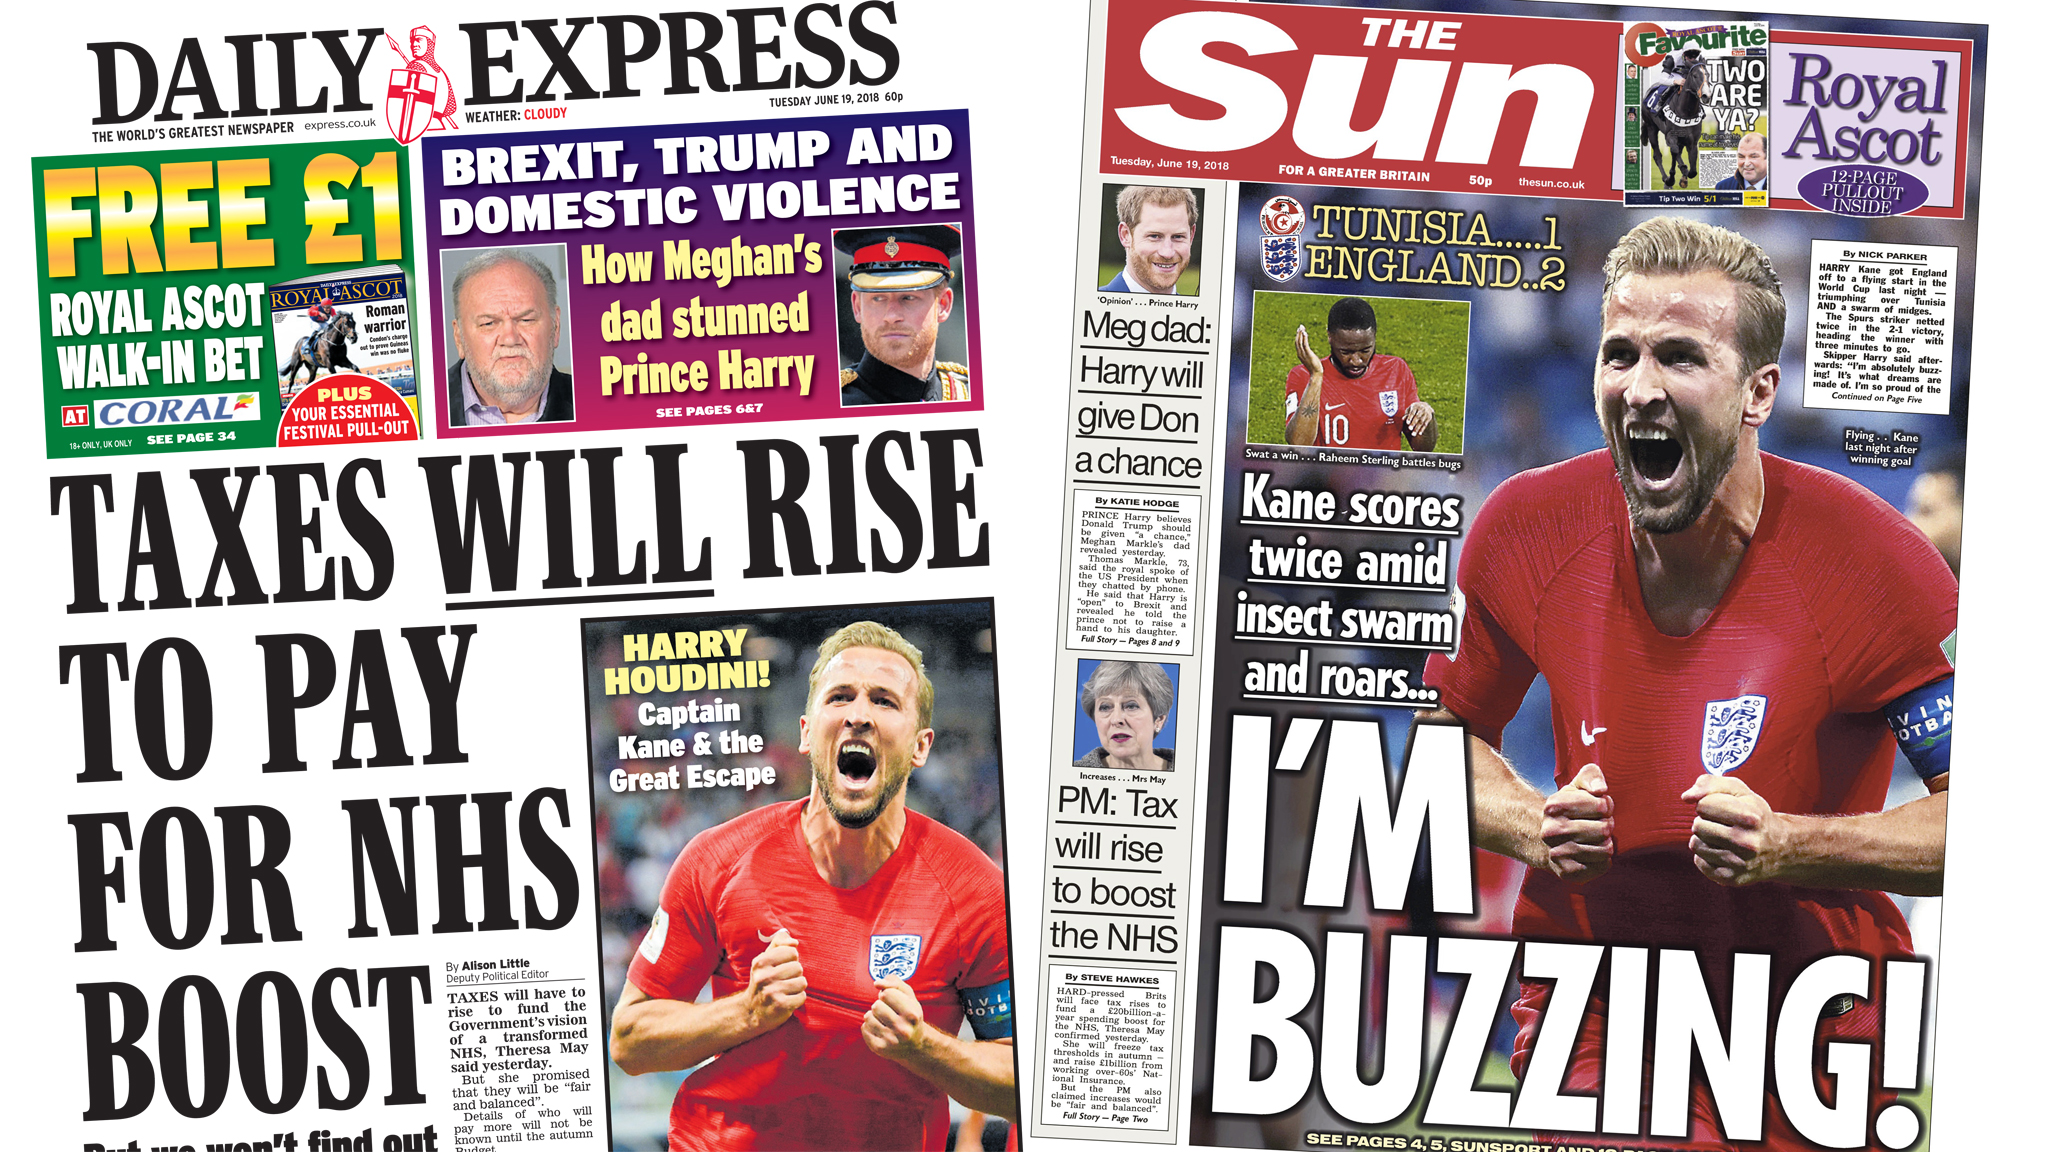 The Papers: NHS tax 'headache' and Captain Marvel